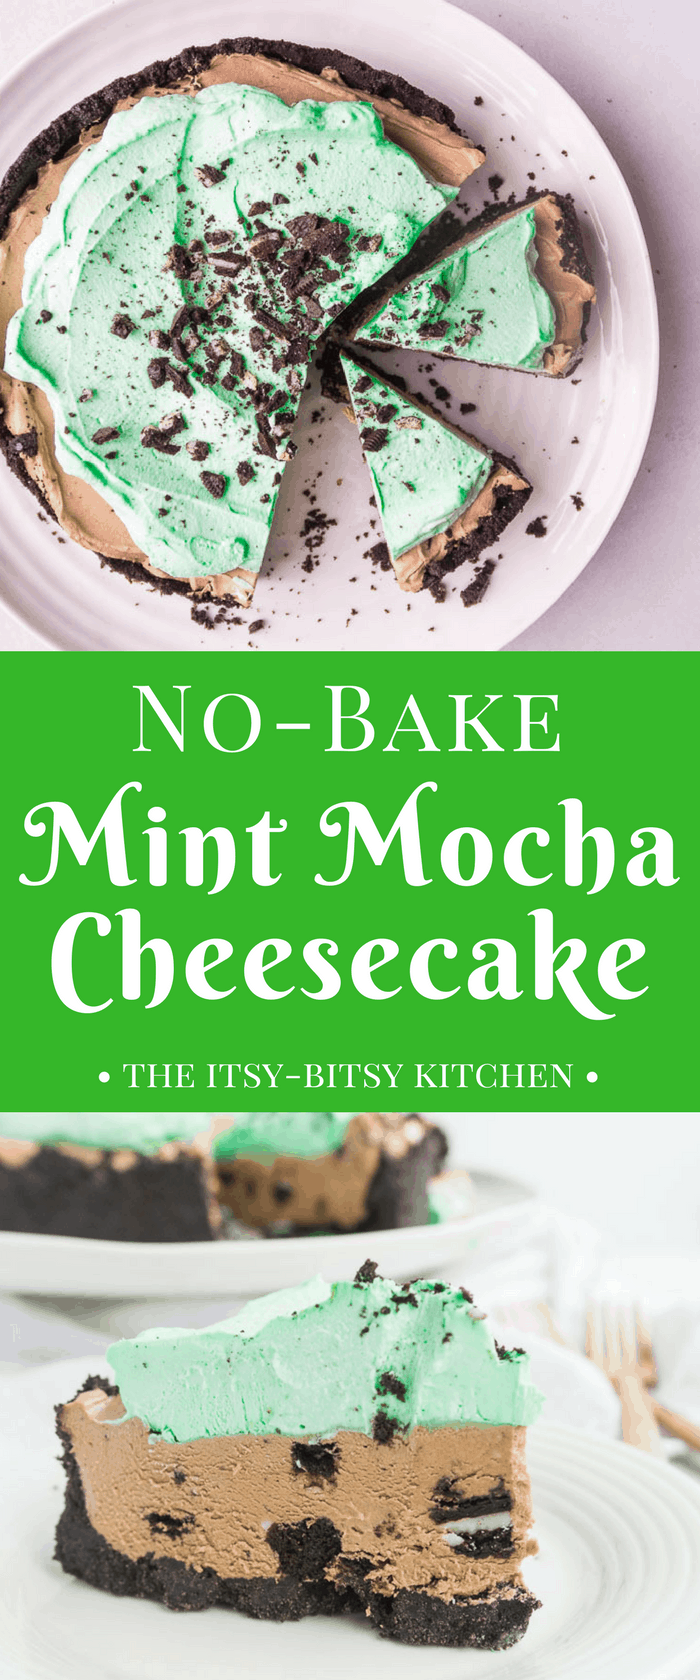 Easy no bake mint mocha cheesecake features a creamy mint mocha cheesecake filled with Oreo cookies topped with cool and minty whipped cream. It's a delicious and refreshing summer dessert! recipe via itsybitsykitchen.com #nobake #cheesecake #chocolatemint